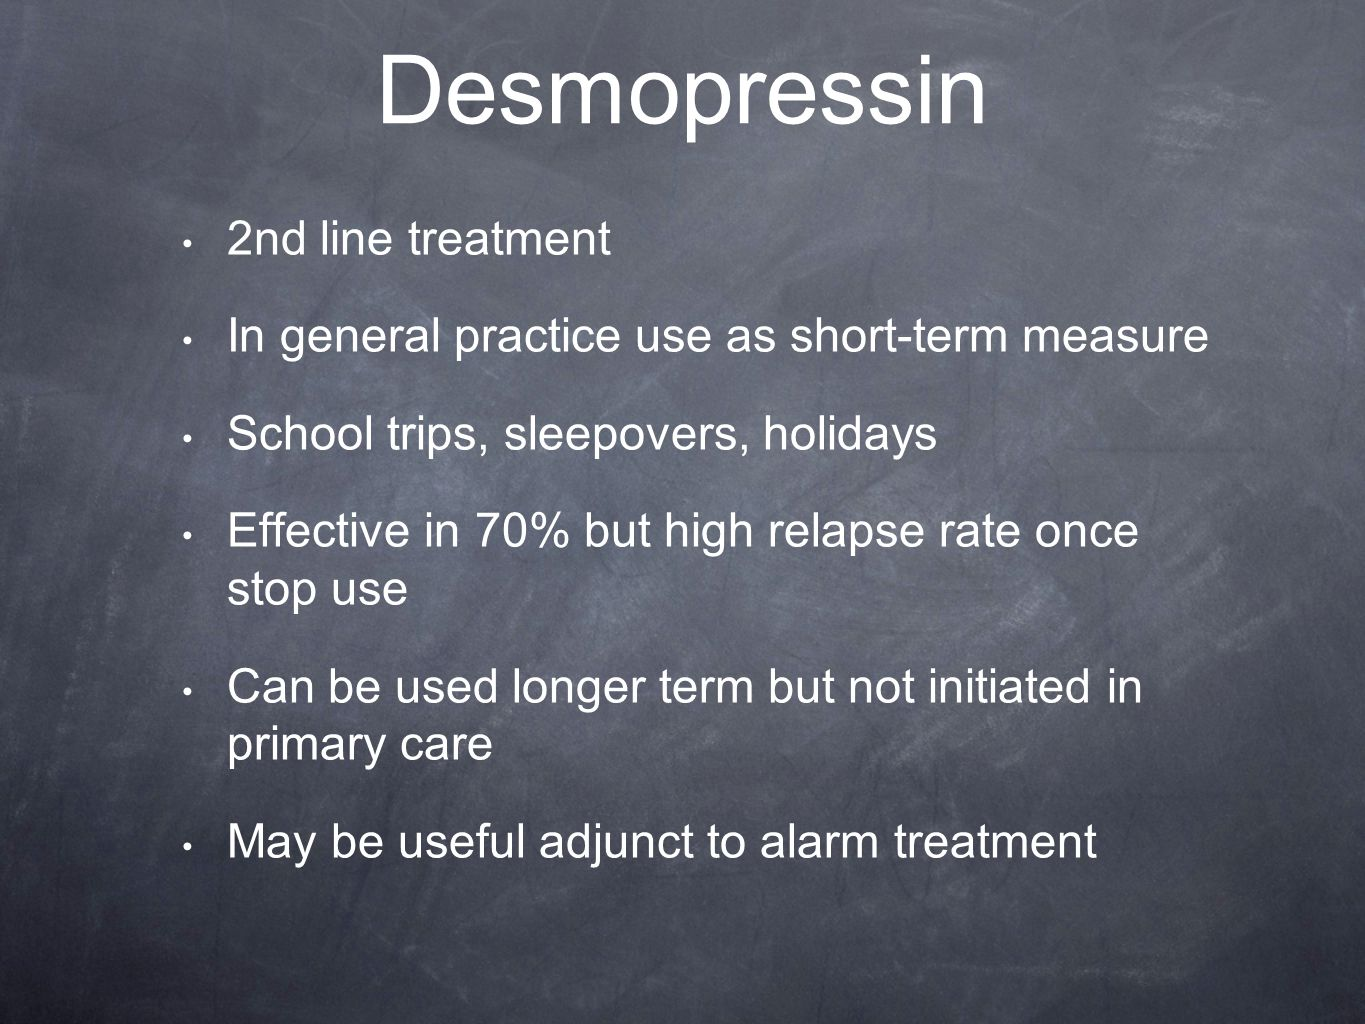 Desmopressin 2nd line treatment In general practice use as short-term measure School trips, sleepovers, holidays Effective in 70% but high relapse rate once stop use Can be used longer term but not initiated in primary care May be useful adjunct to alarm treatment